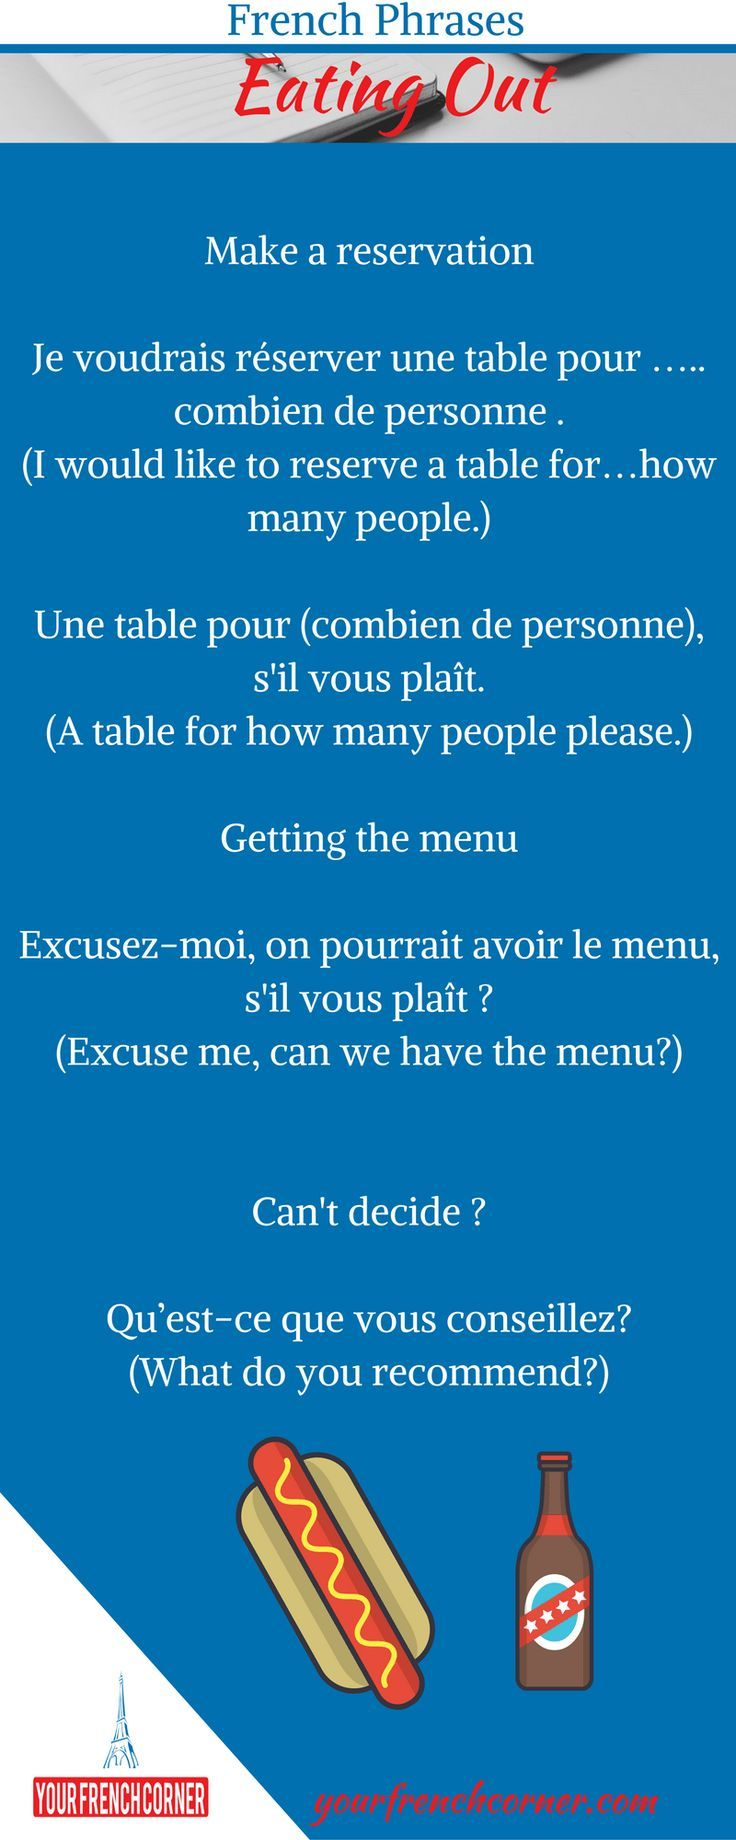 Eating out in Paris? Here is what you need to remember! #learnfrench #fle  #frenchimmersion